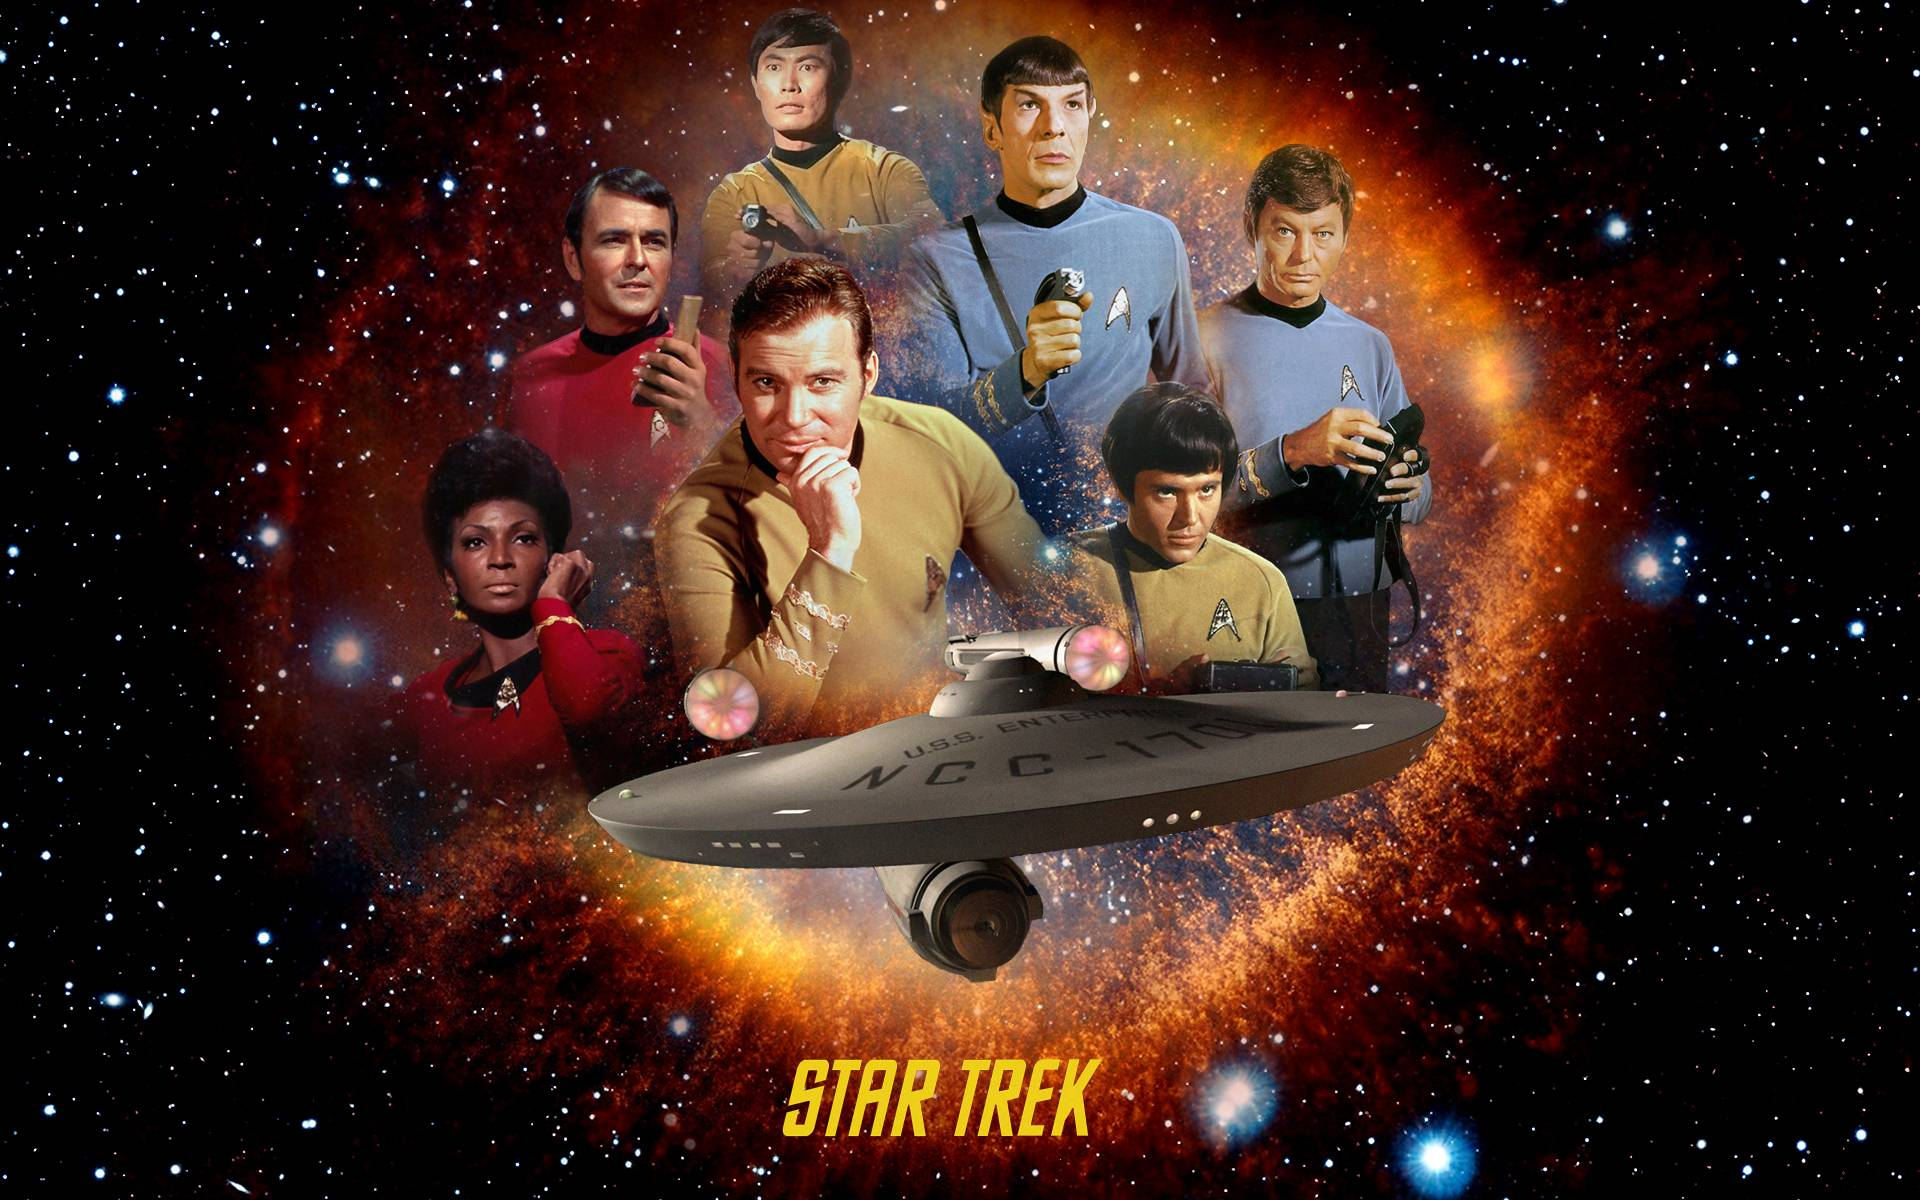 Original Star Trek Wallpaper